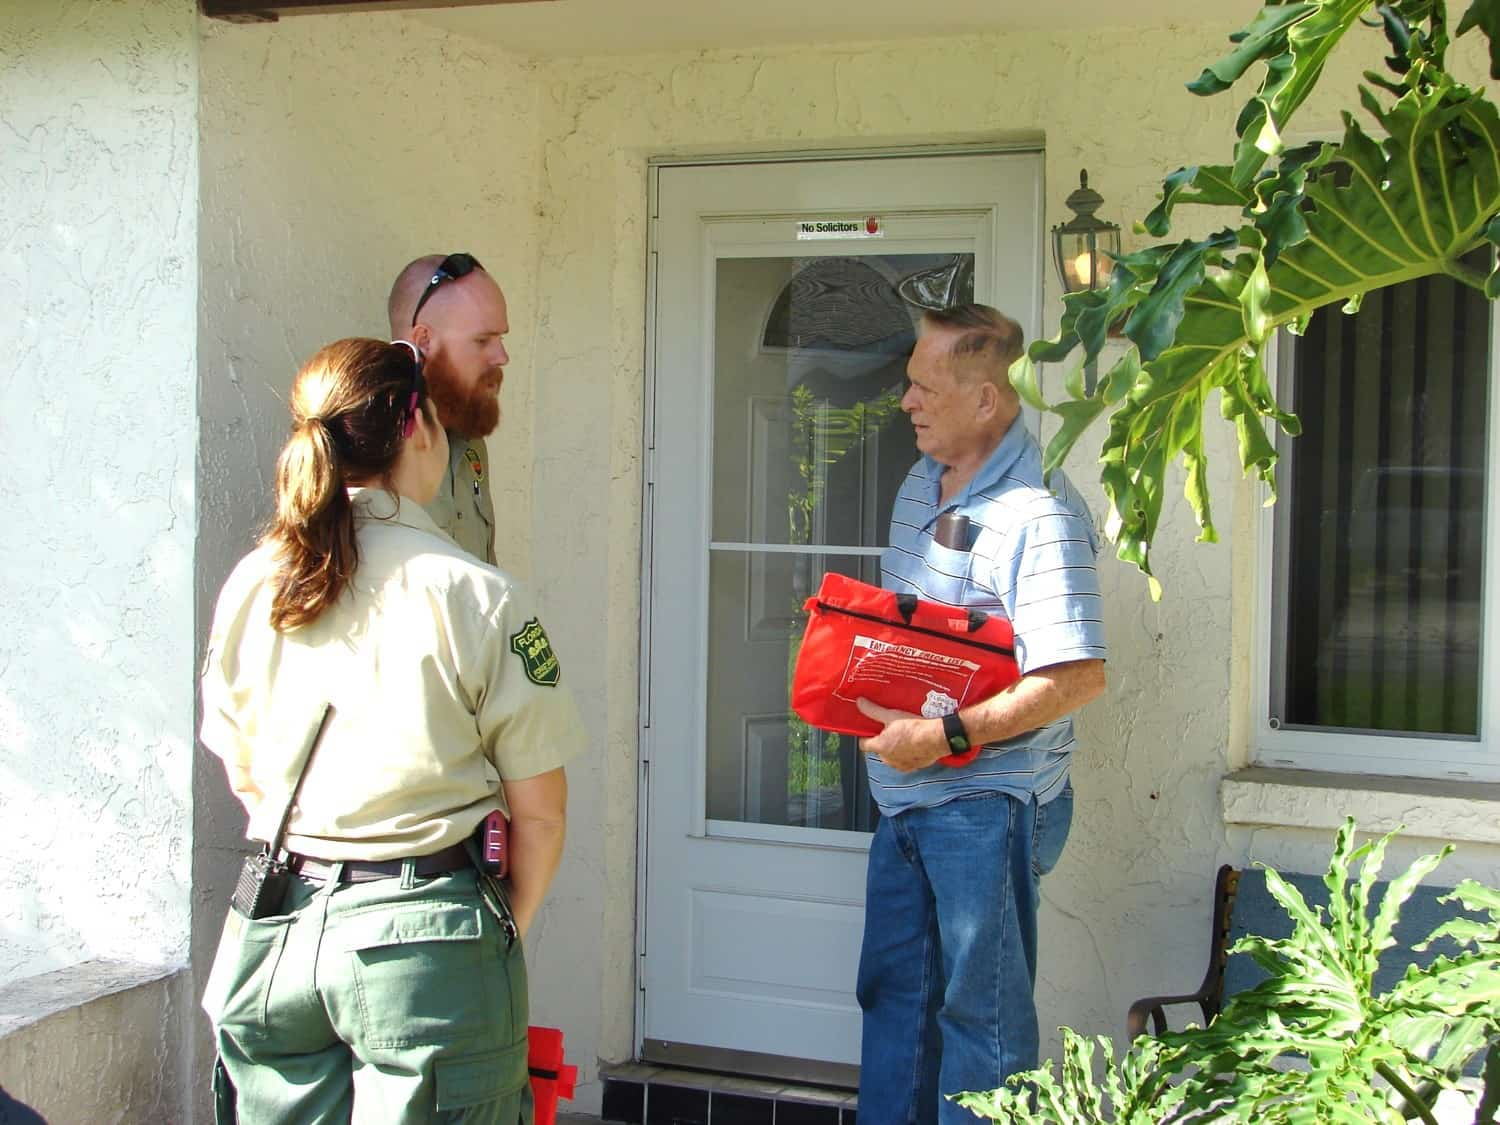 Two rangers talking with a homeowner on his porch